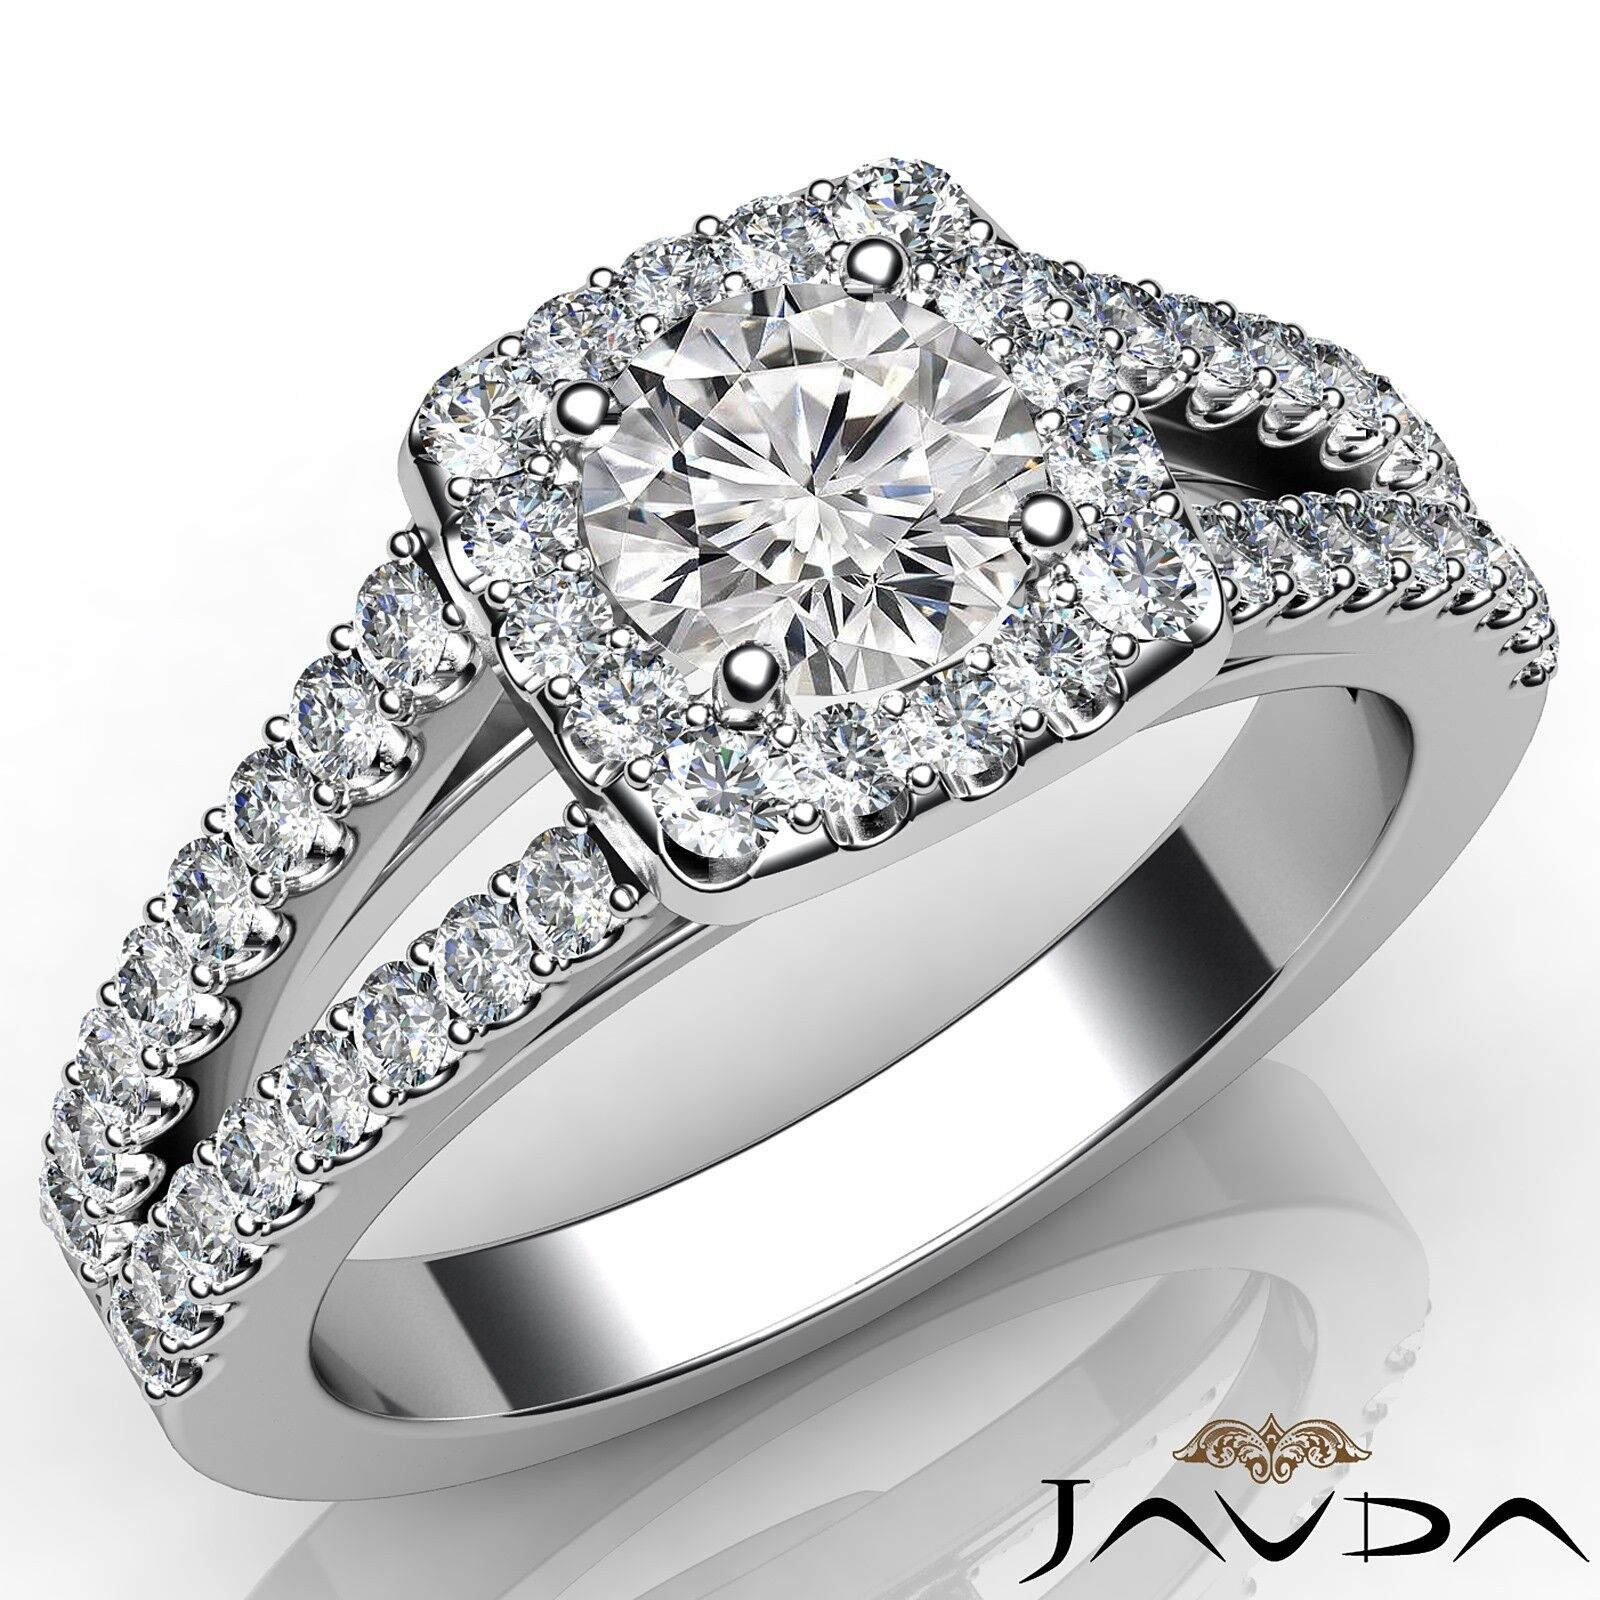 1.35ctw Shared Prong Round Diamond Engagement Ring GIA E-VVS2 White Gold Rings